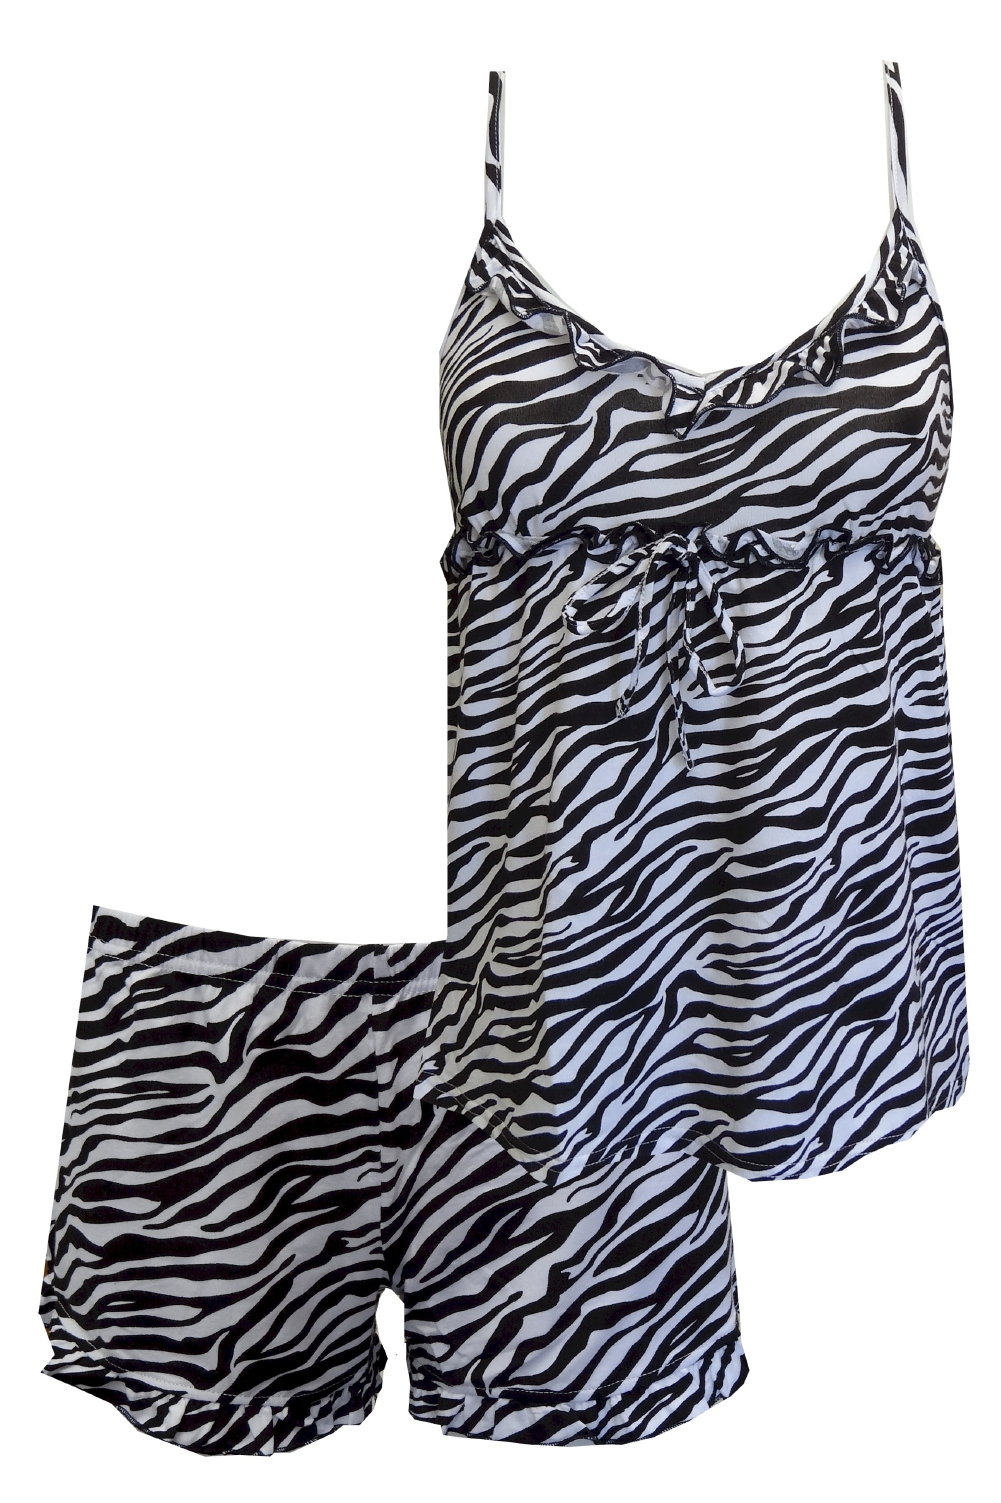 Black And White Zebra Babydoll Shortie Pajamas for women